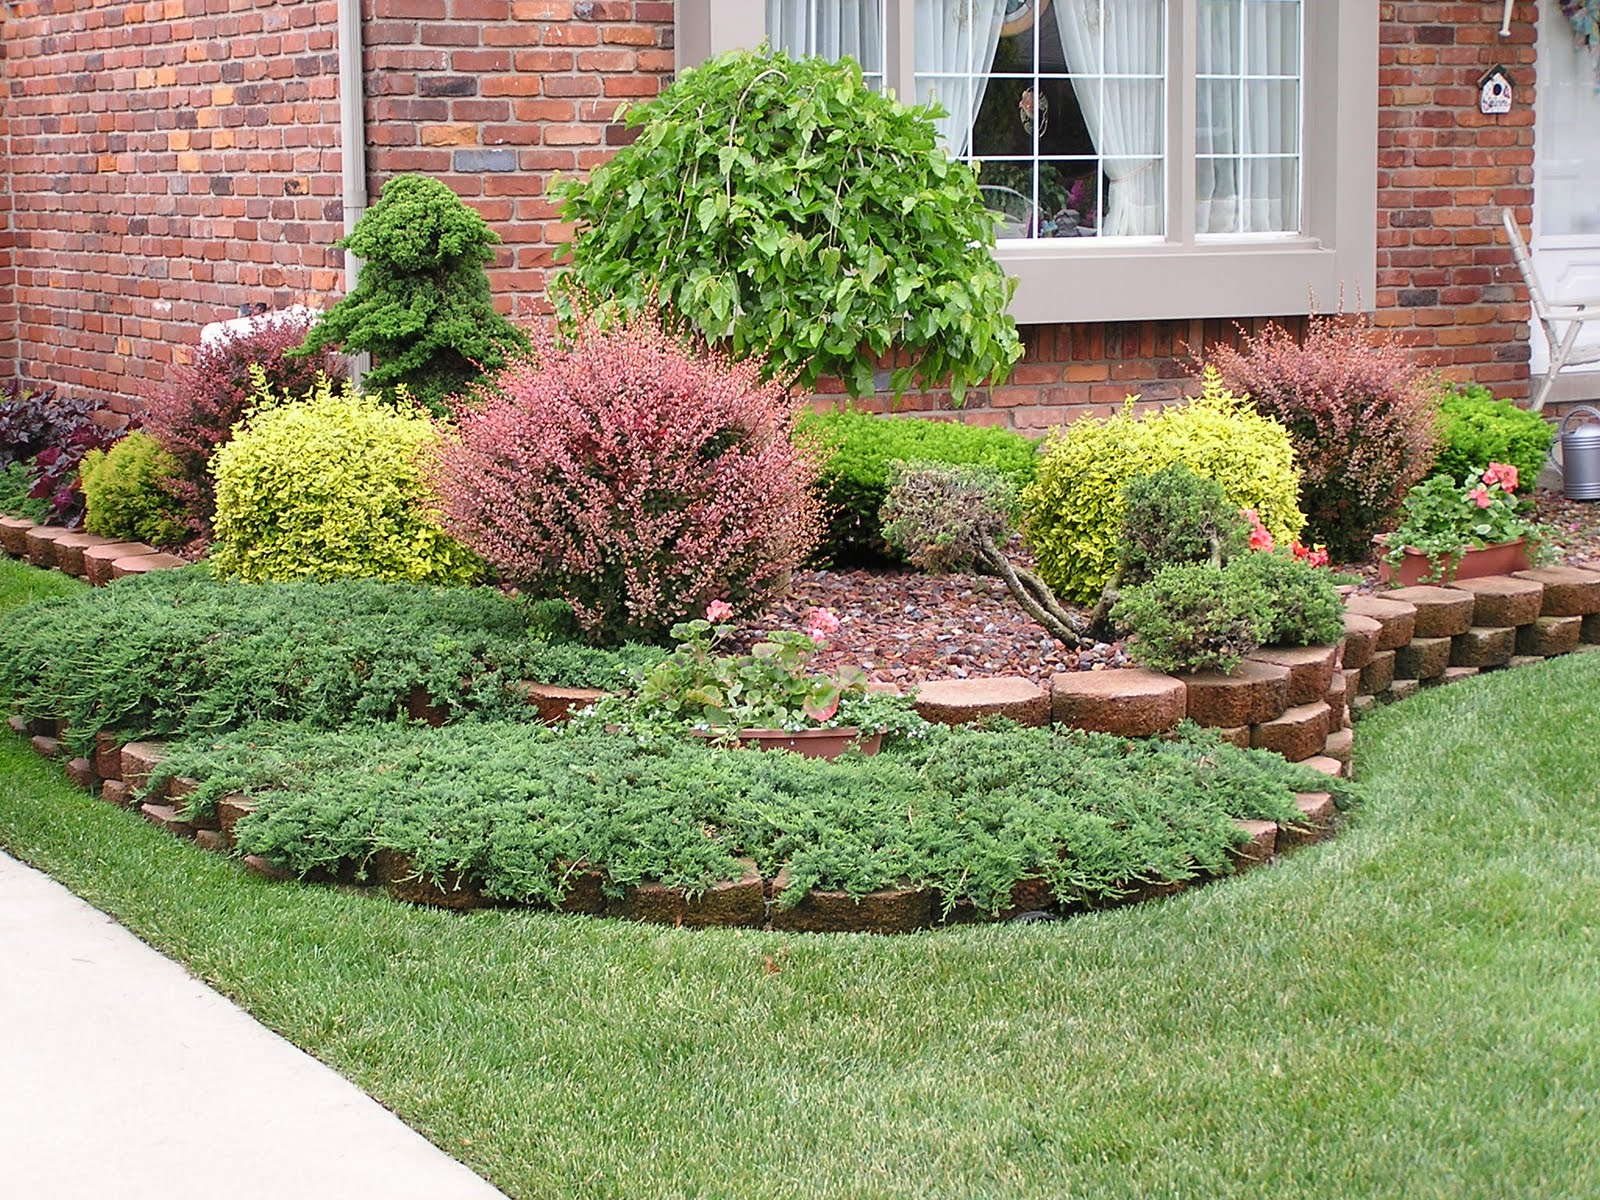 D i y d e s i g n curb appeal part 2 the landscaping for Landscaping pictures for front yard